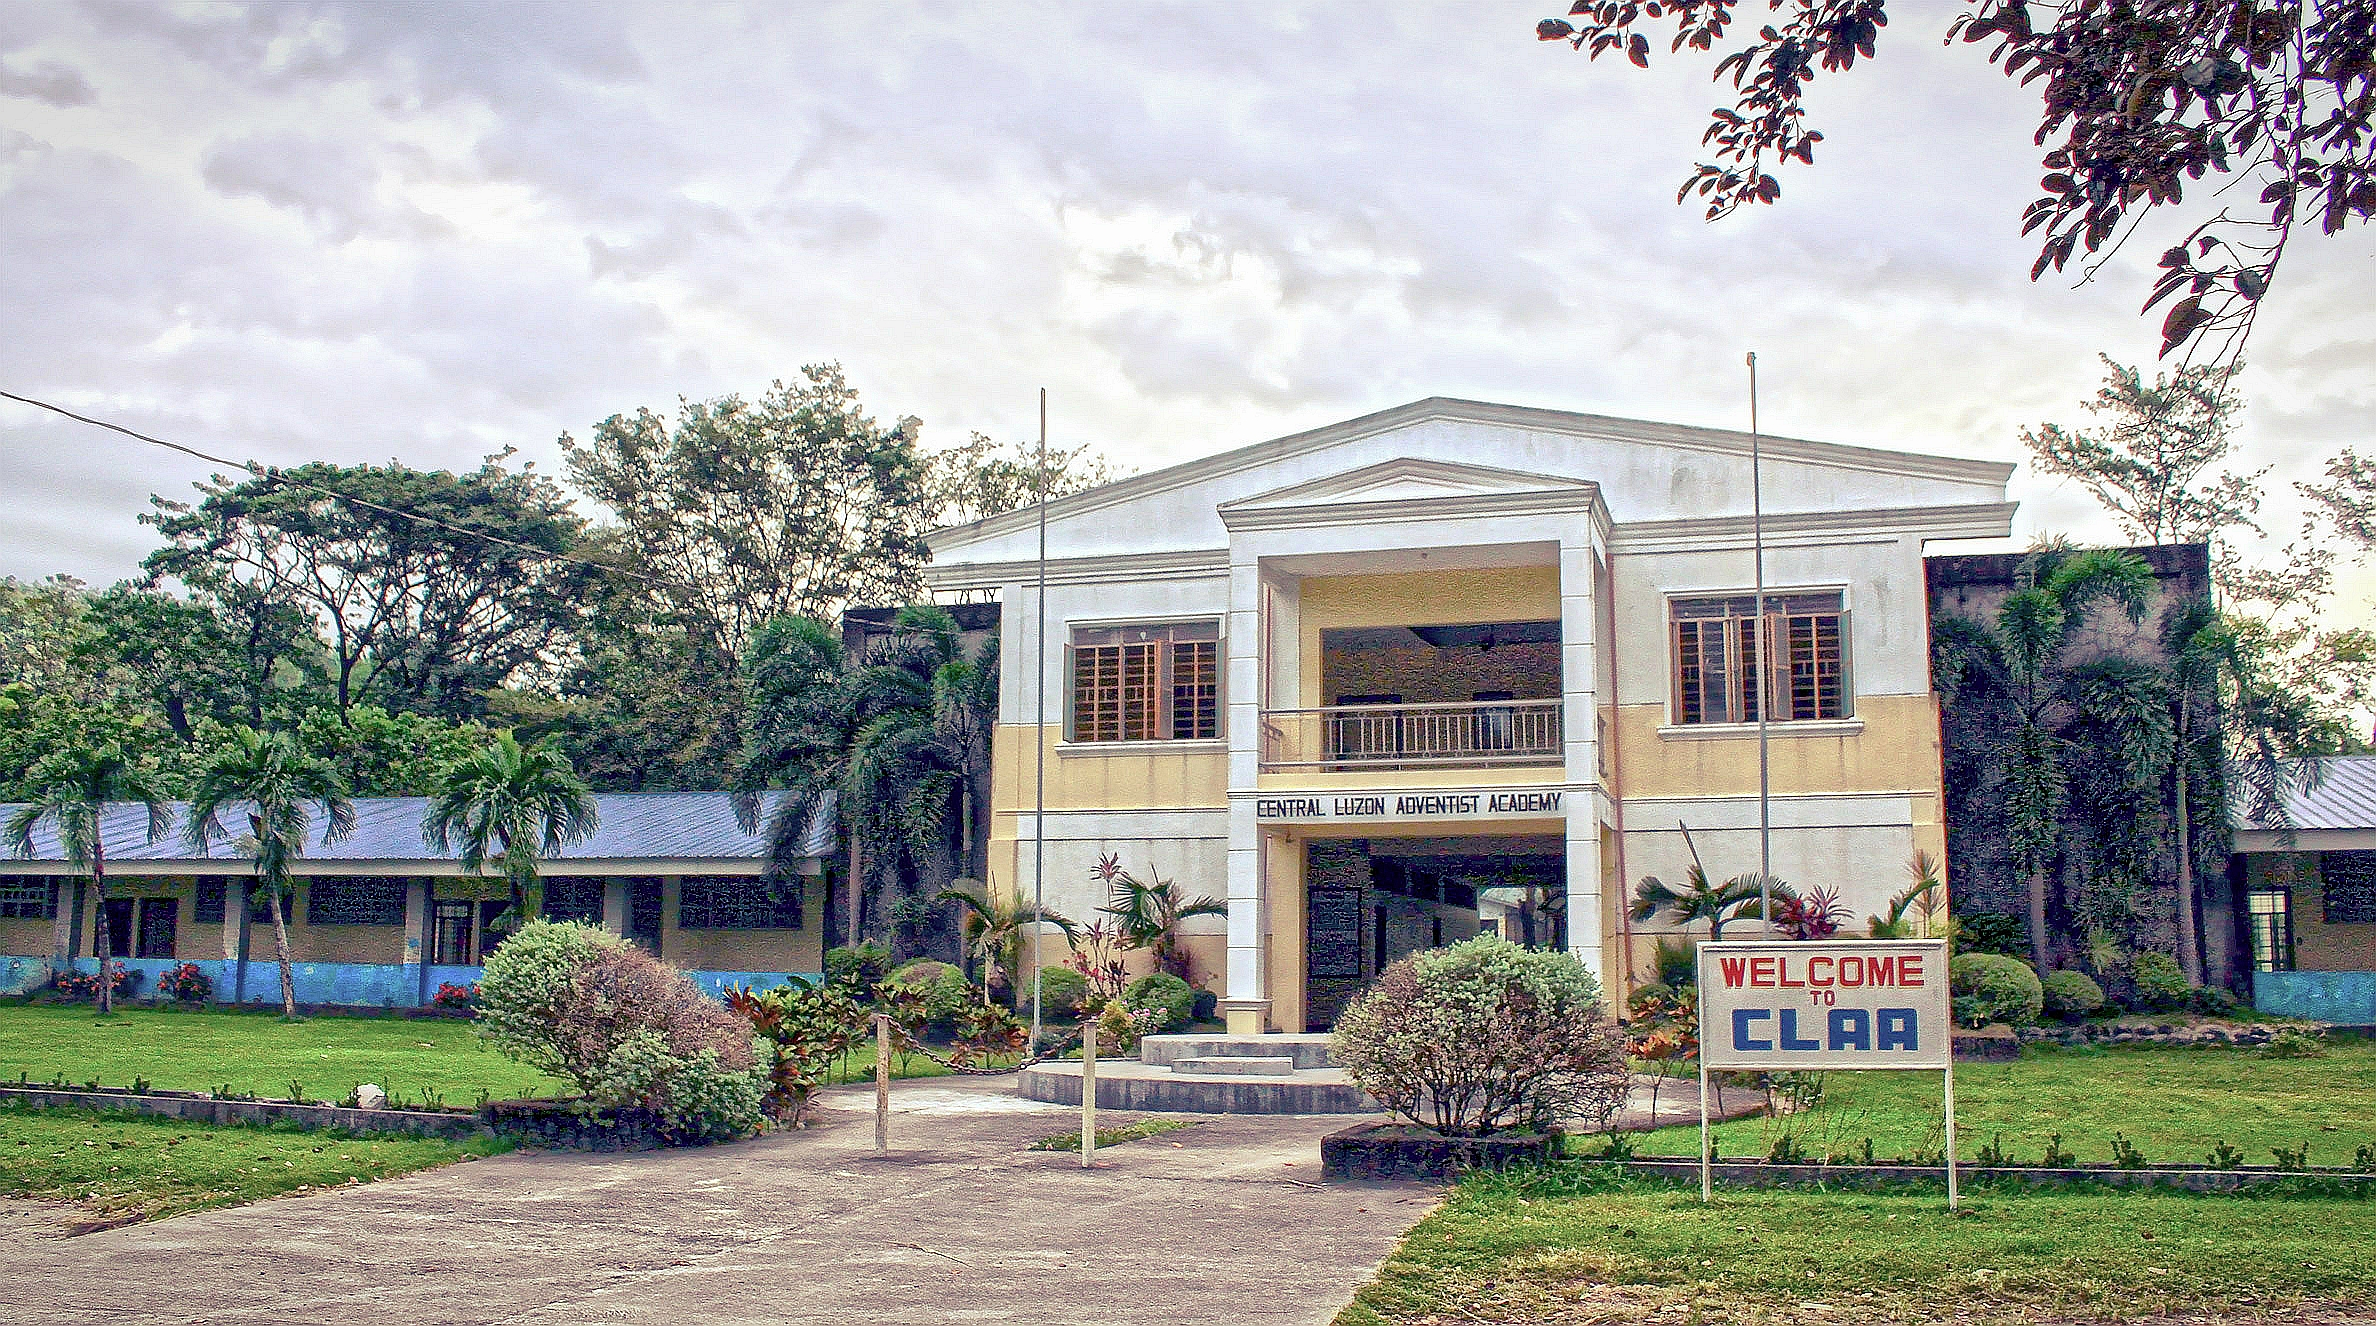 Central Luzon Adventist Academy - Wikipedia